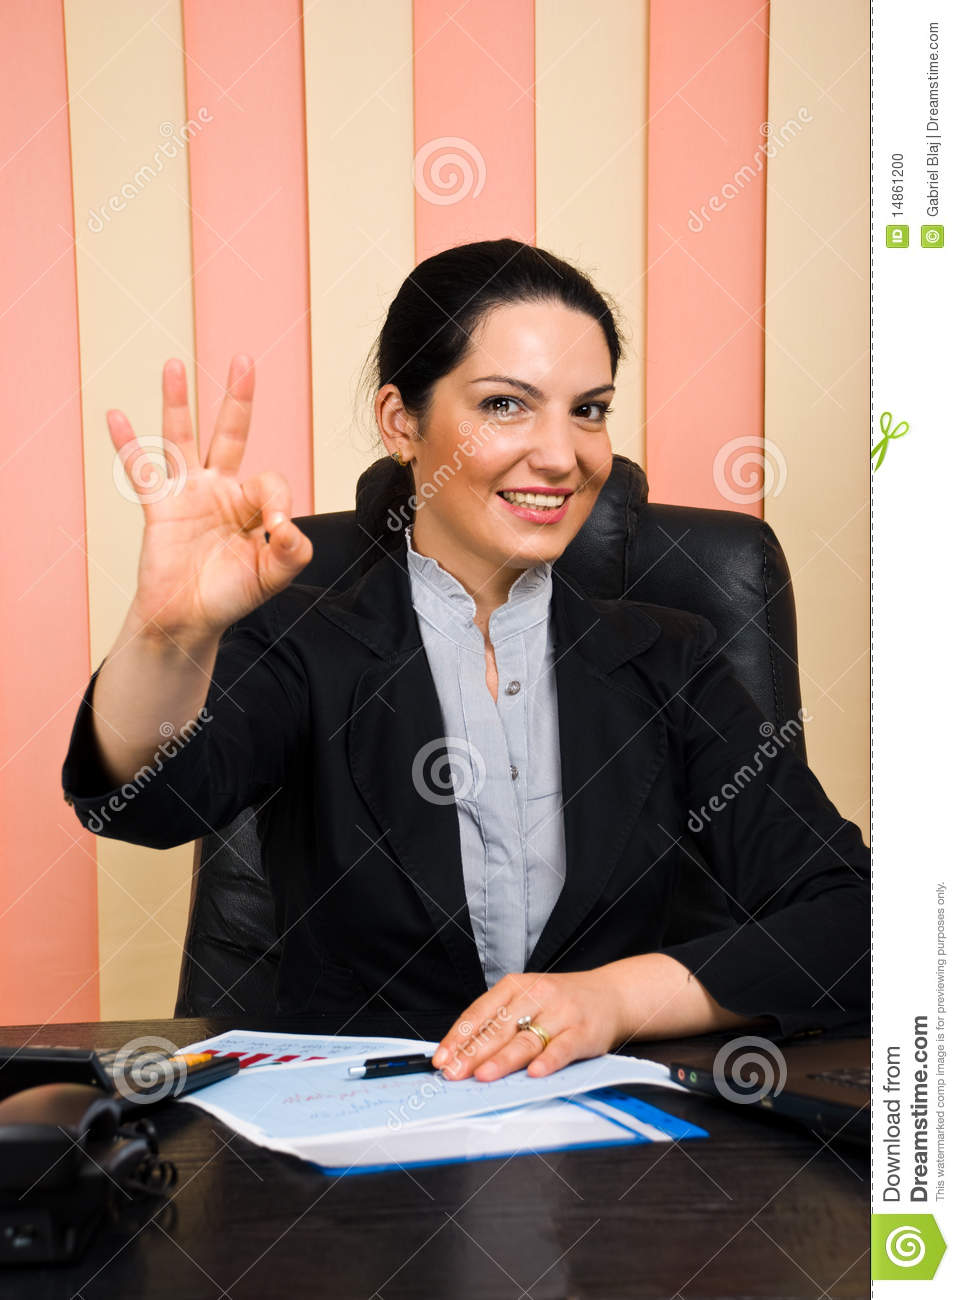 Happy business woman showing okay sign hand